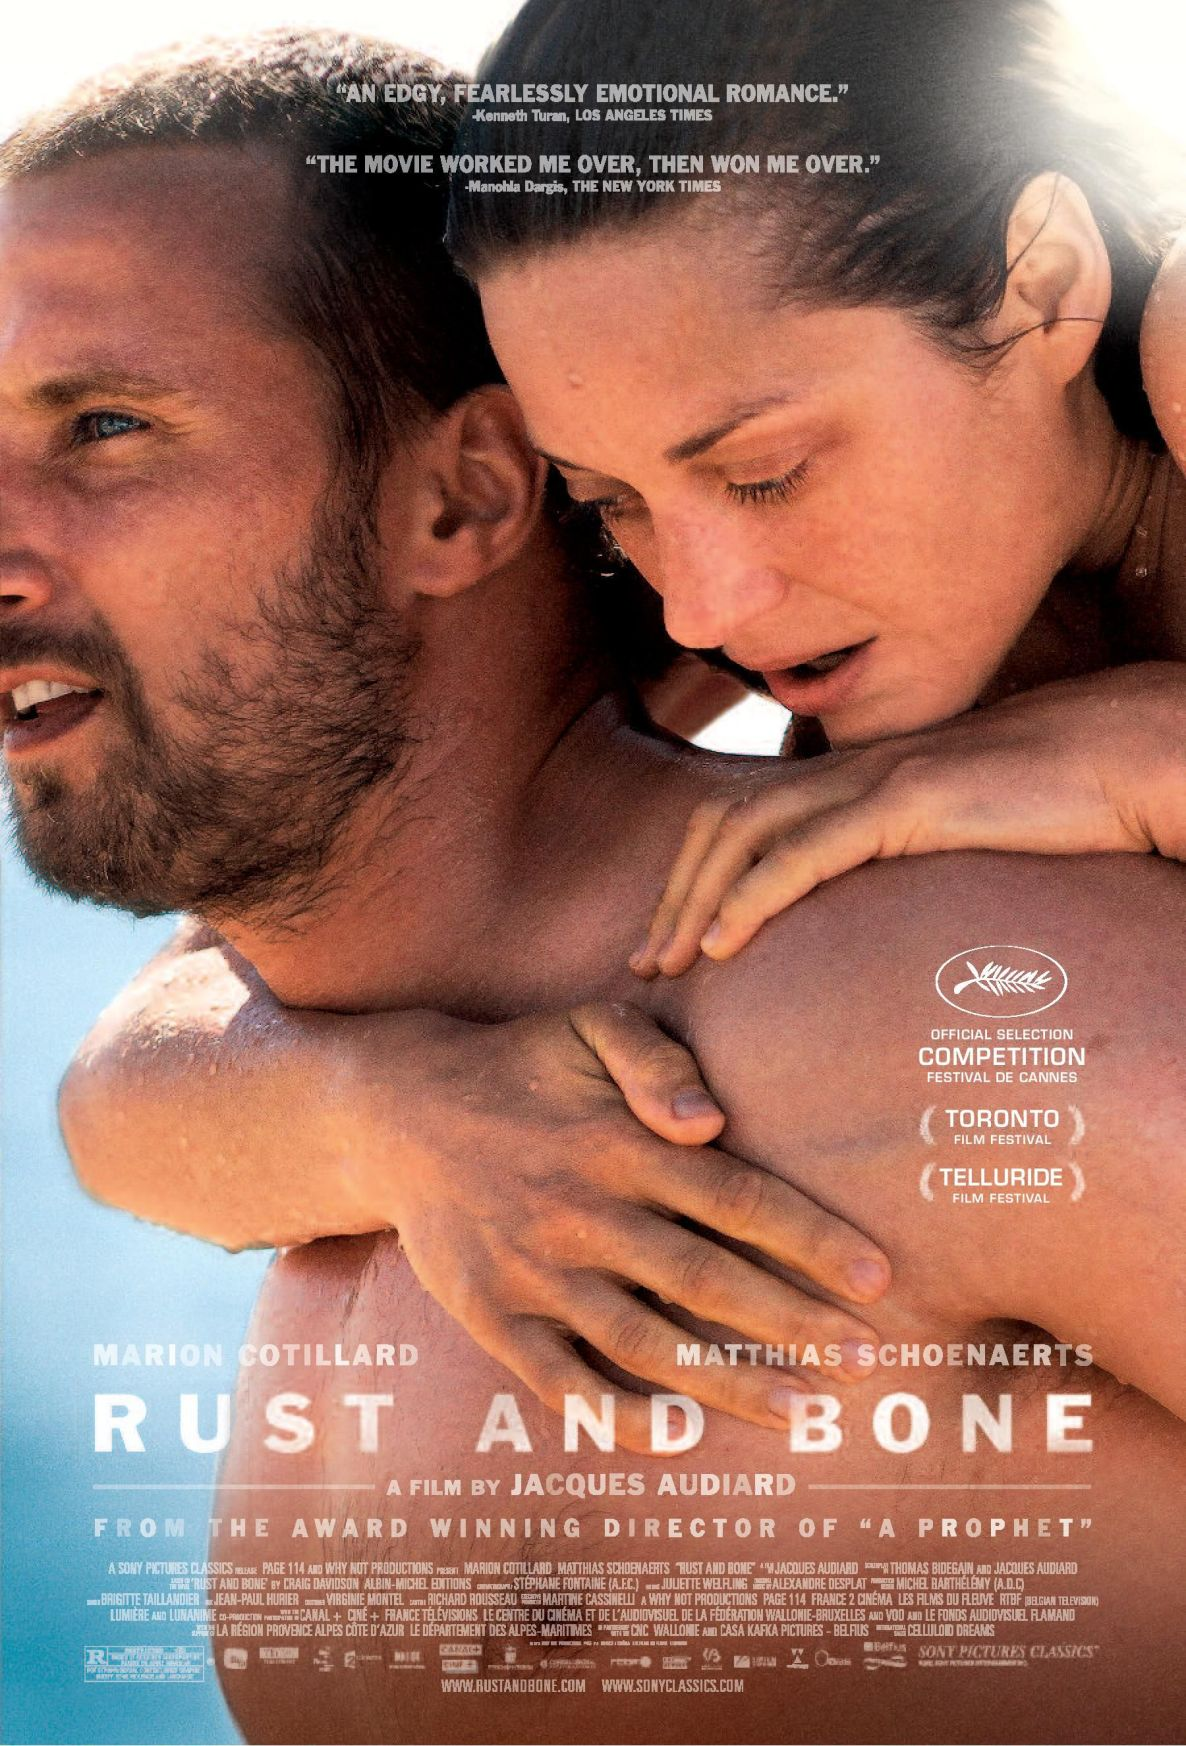 'Rust and Bone' defines romance in its own way